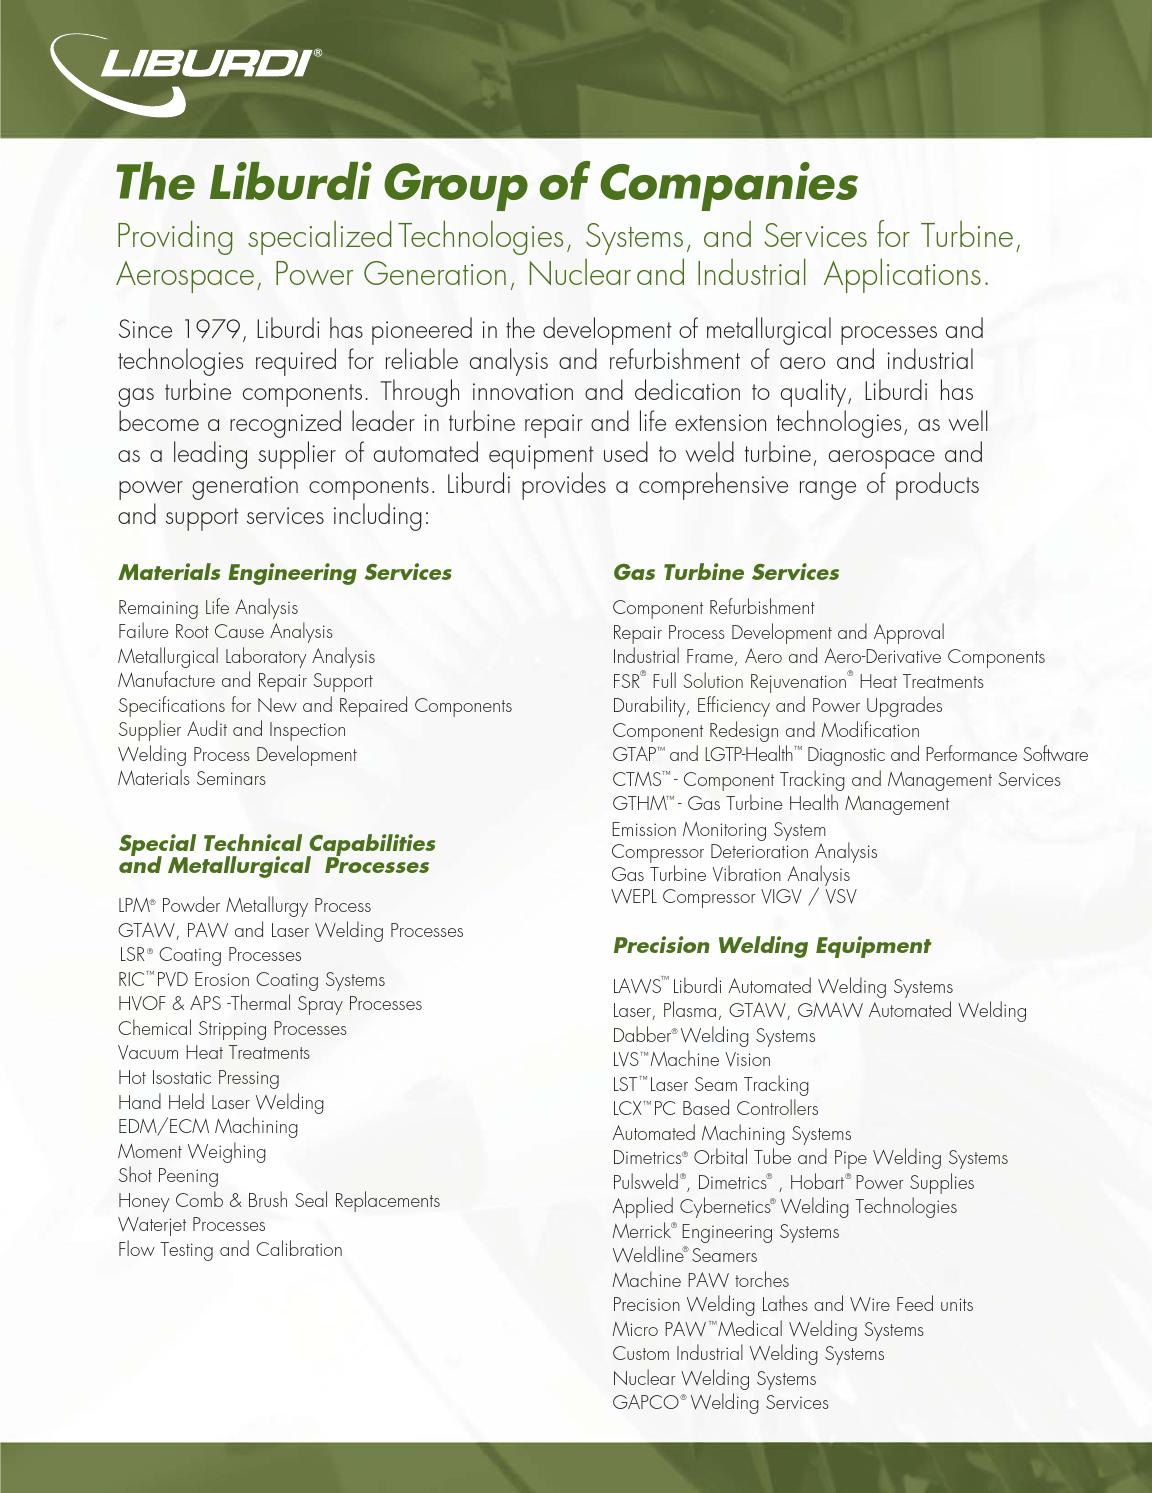 Liburdi Corporate Brochure By Issuu Correct Compressor Control Wiring Total Performance Diagnostic For